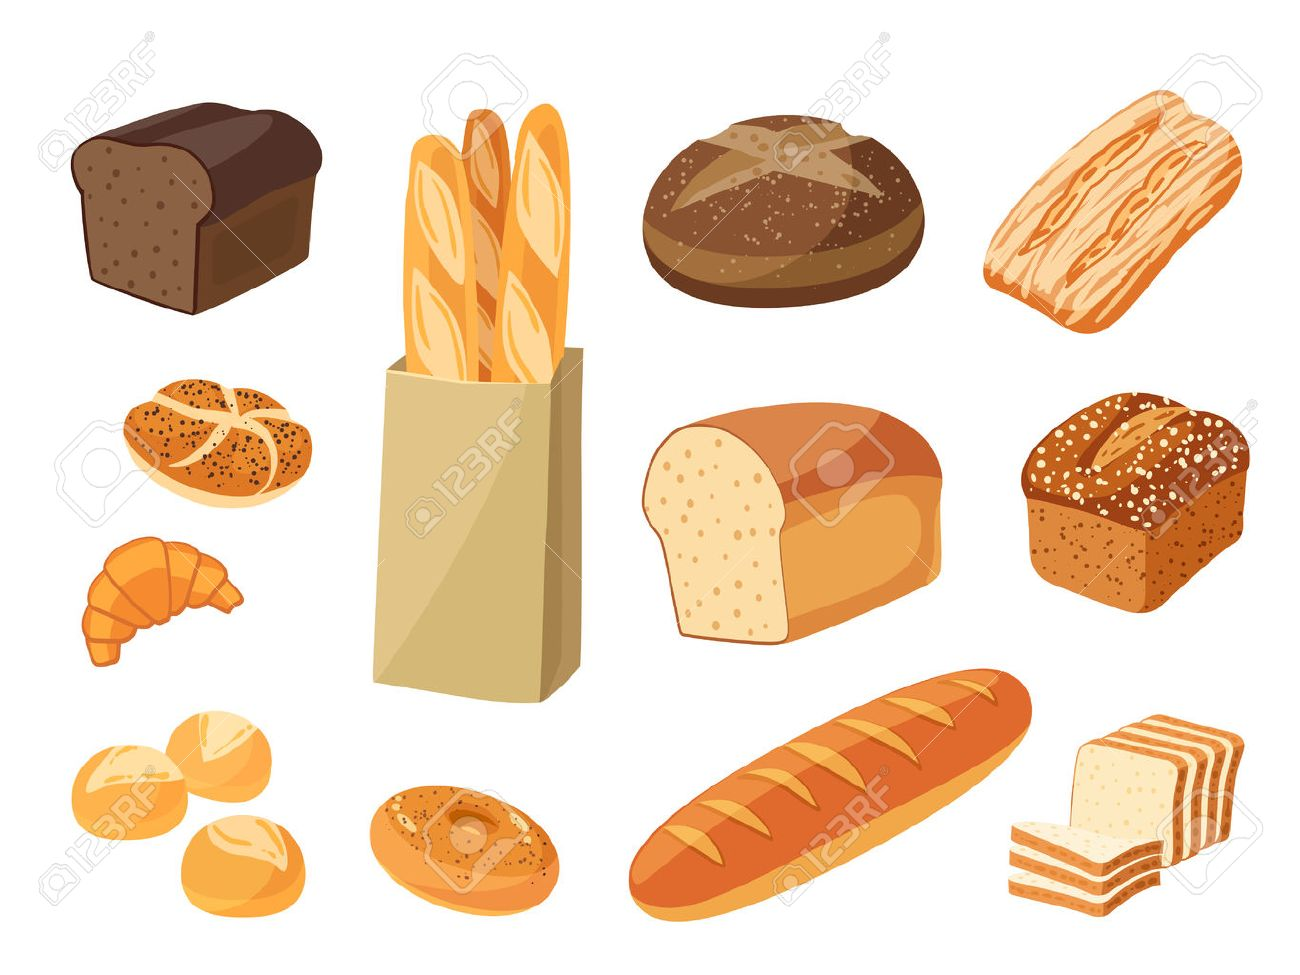 Set of cartoon food: bread - rye bread, ciabatta, wheat bread, whole grain bread, bagel, sliced bread, french baguette, croissant and so. Vector illustration, isolated on white, eps 10. - 53400061